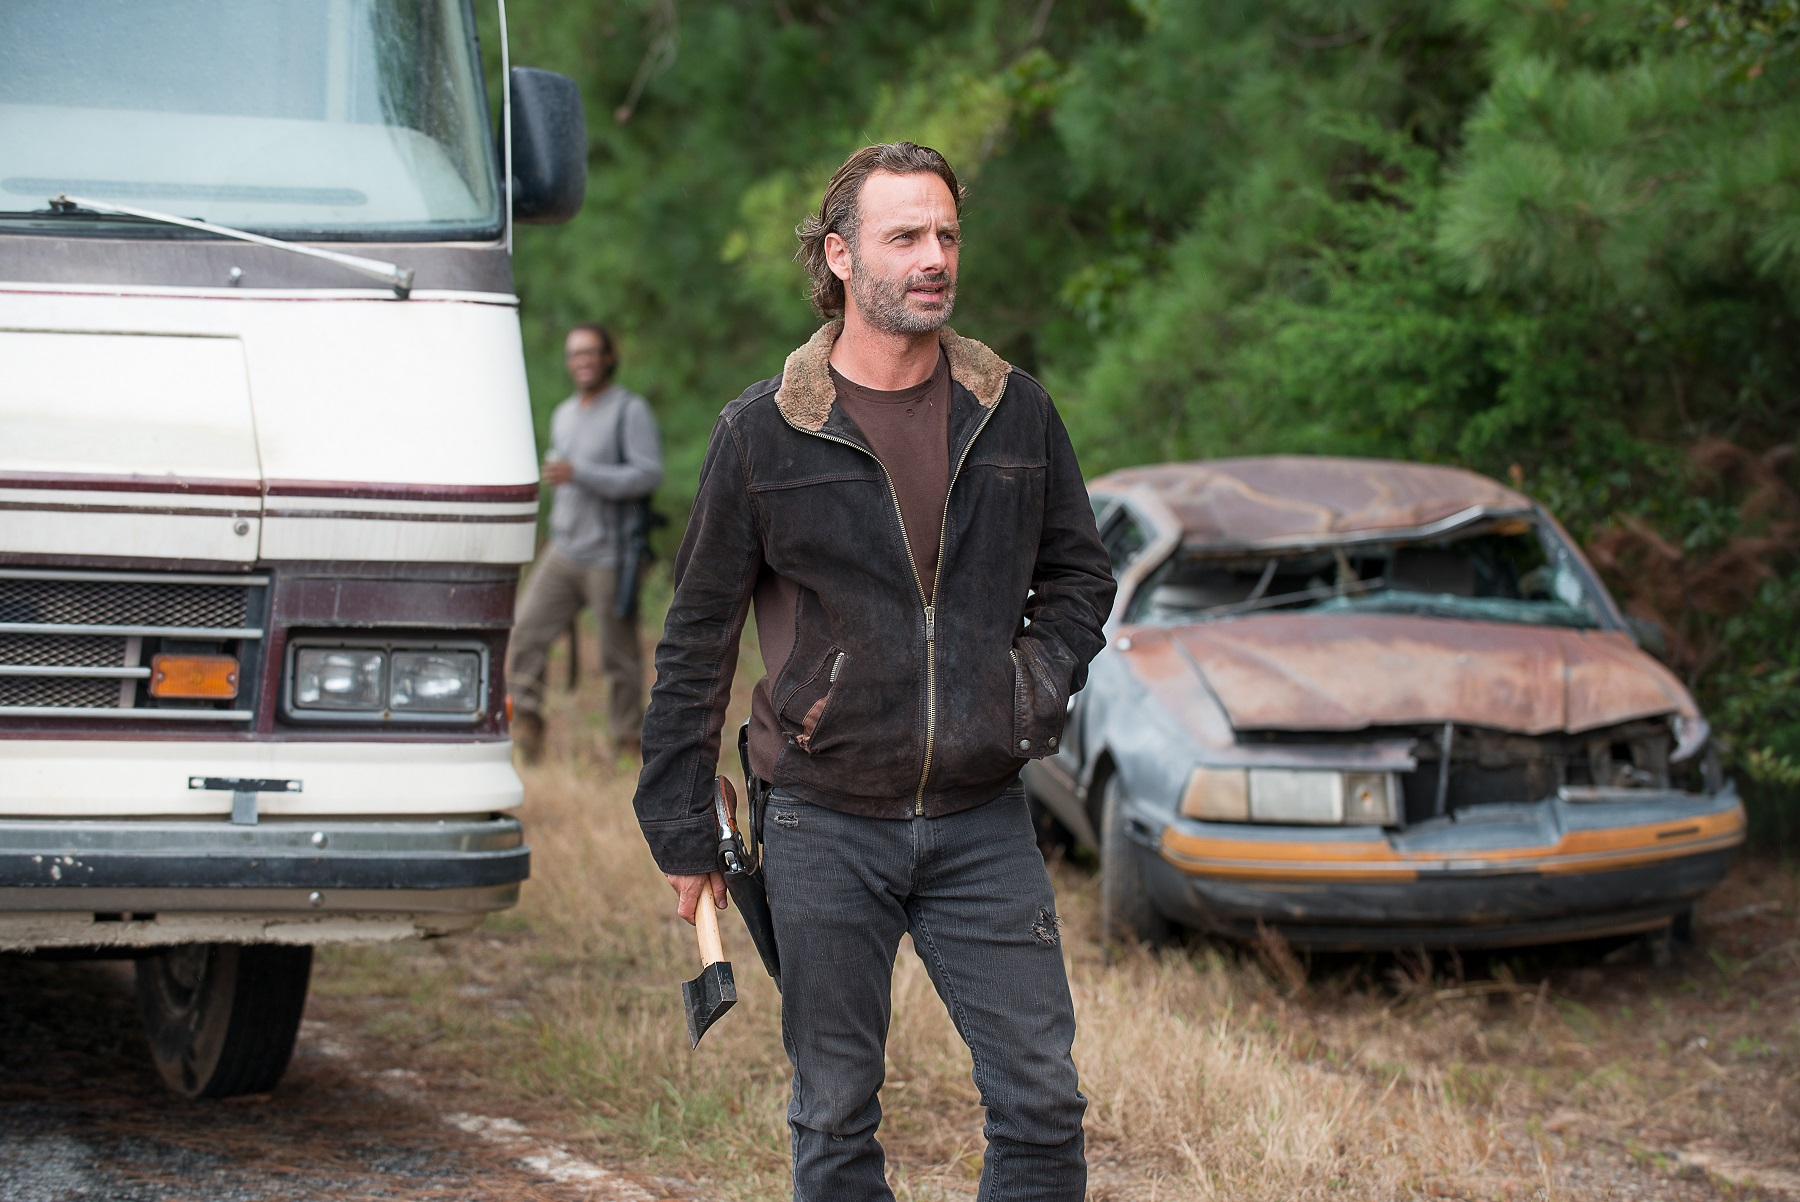 Rick proposes a plan that might lead to disaster, and it goes a little bit wrong. Finally!